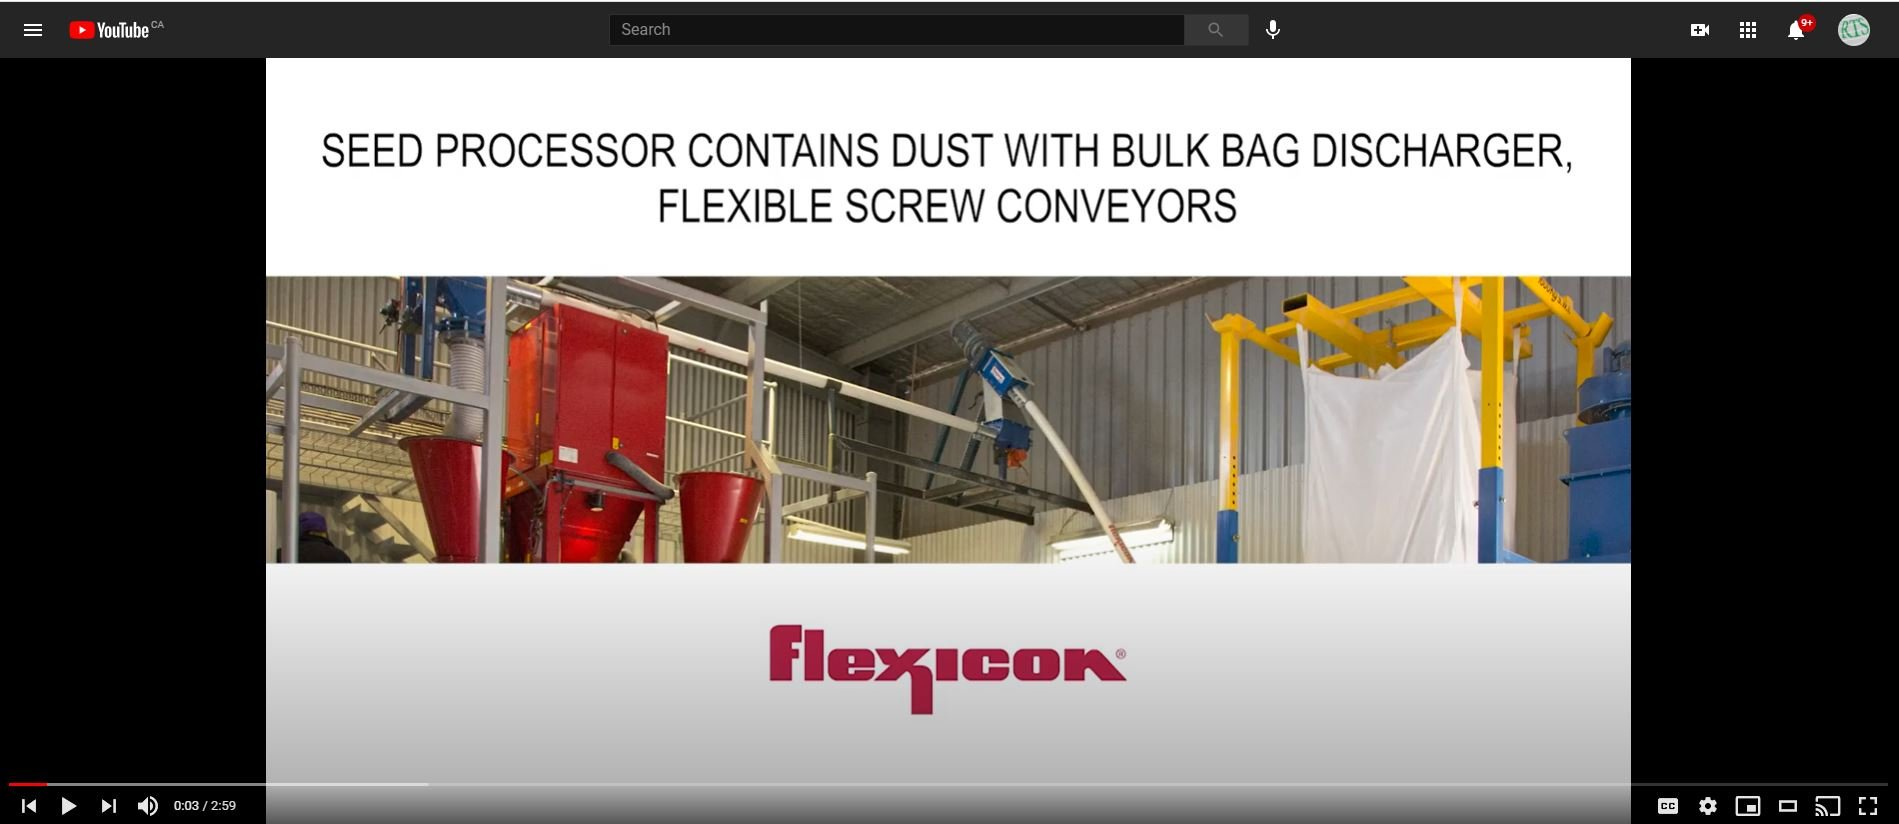 Seed Processor Contains Dust with Bulk Bag Discharger Flexible Screw Conveyors Static Screen